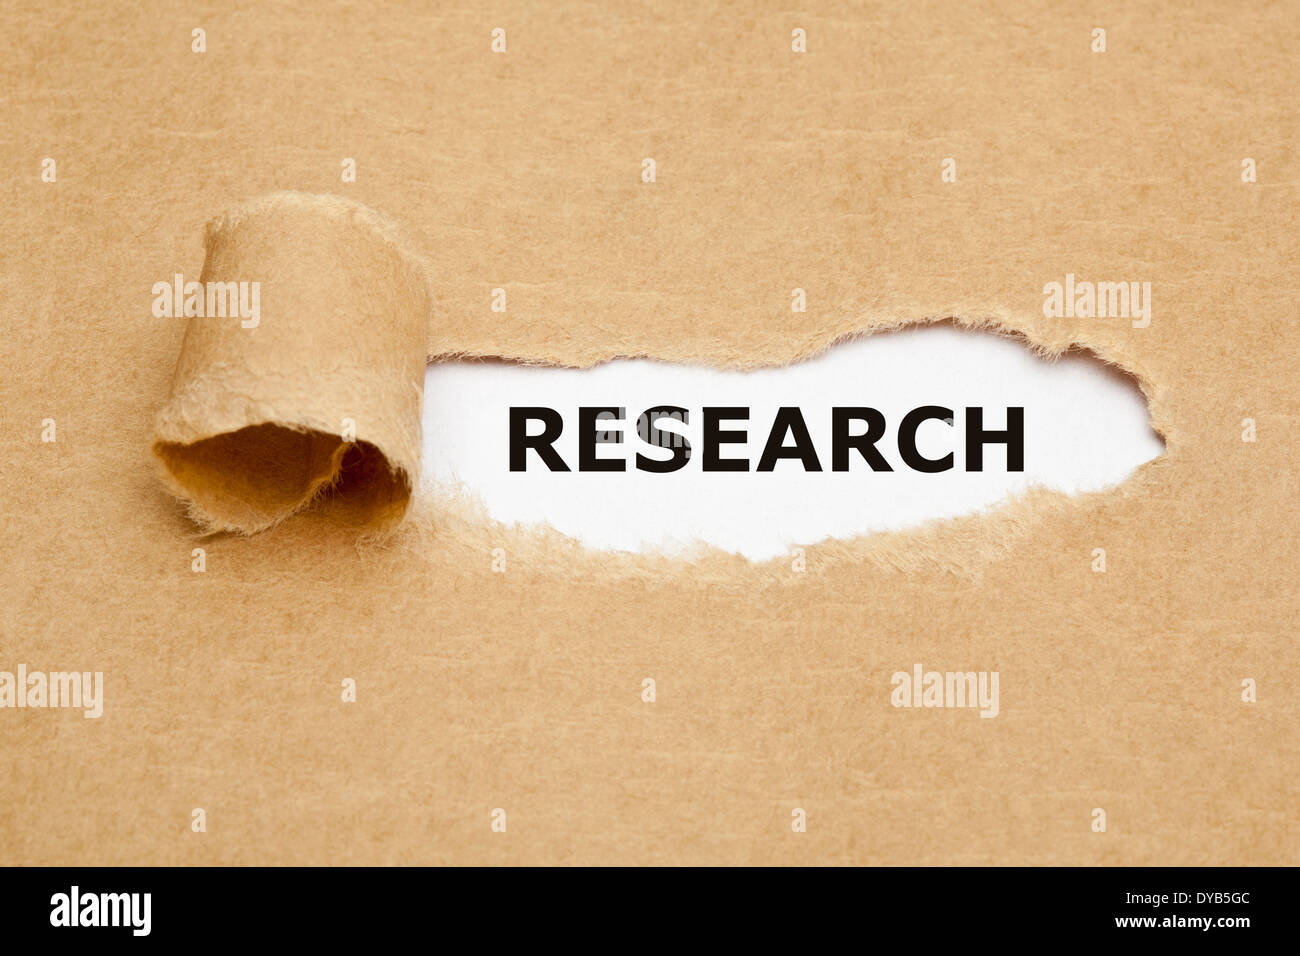 The word Research appearing behind torn brown paper. - Stock Image